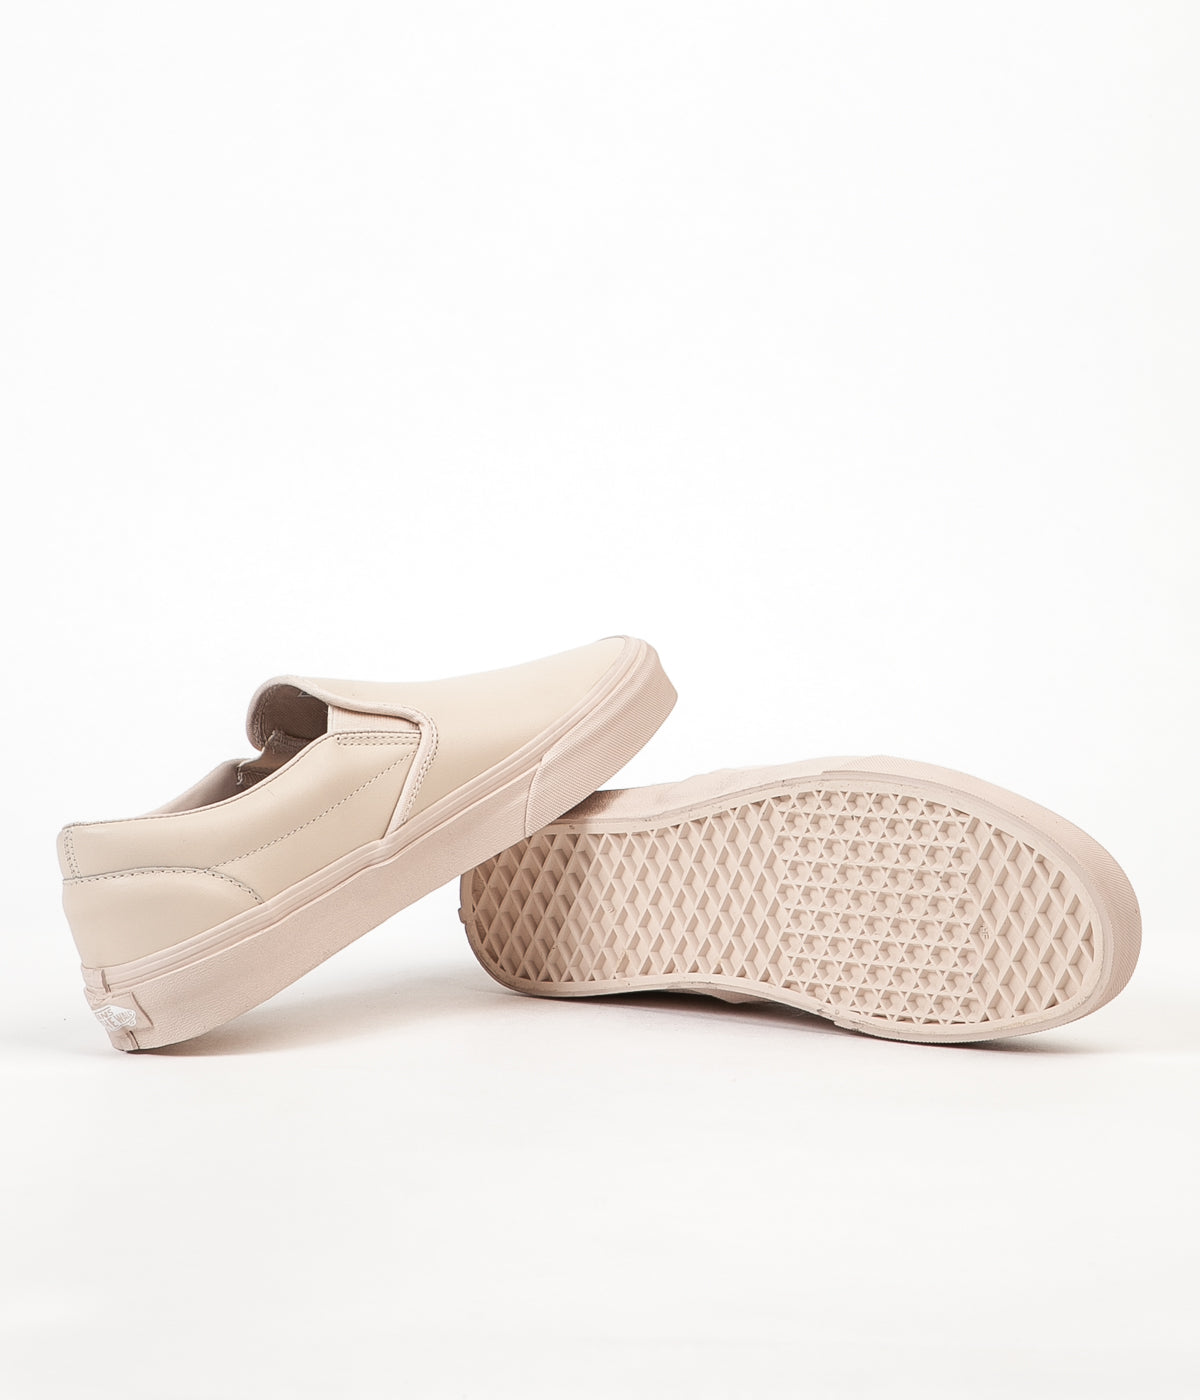 41a1abae2d Vans Classic Slip On Leather Shoes - Whisper Pink   Mono